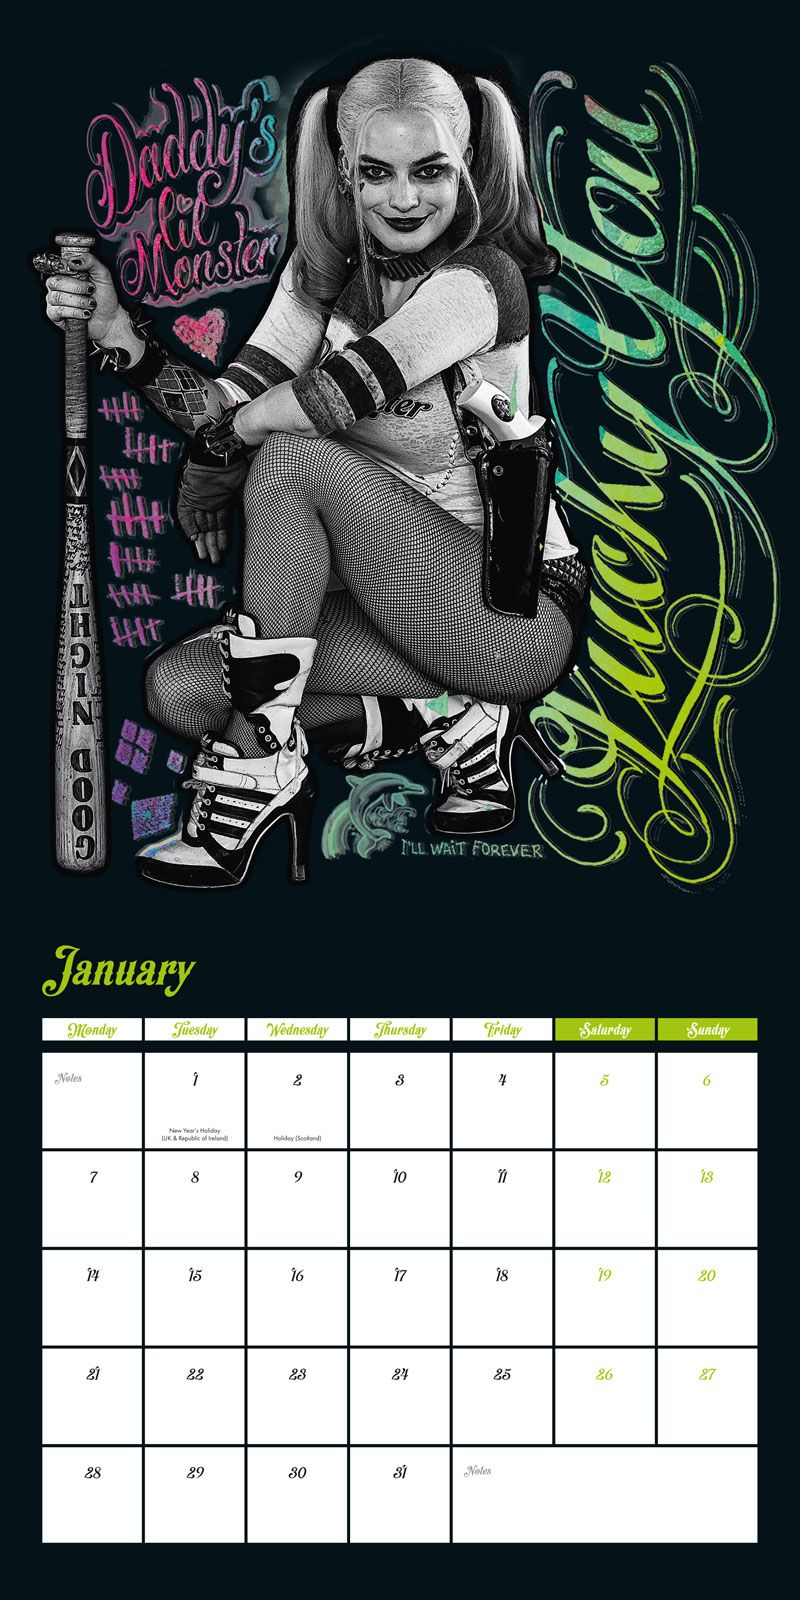 harley quinn kalender 2019 wandkalender gr e 30x30 cm. Black Bedroom Furniture Sets. Home Design Ideas